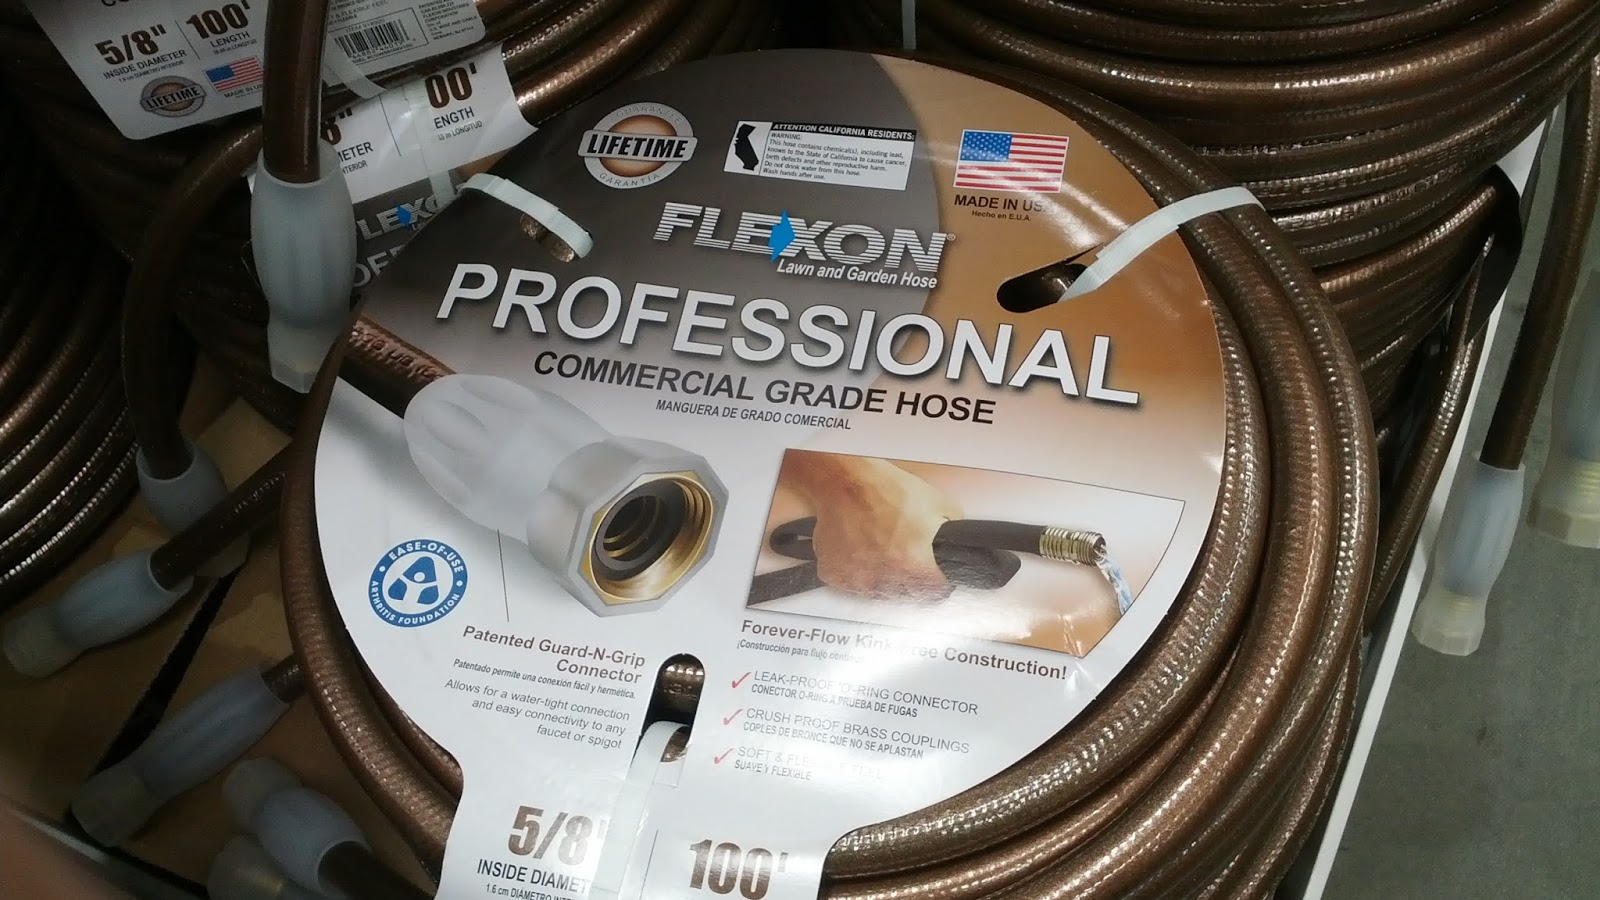 Marvelous Flexon 100 Ft Professional Commercial Grade Hose U2013 Kink Free